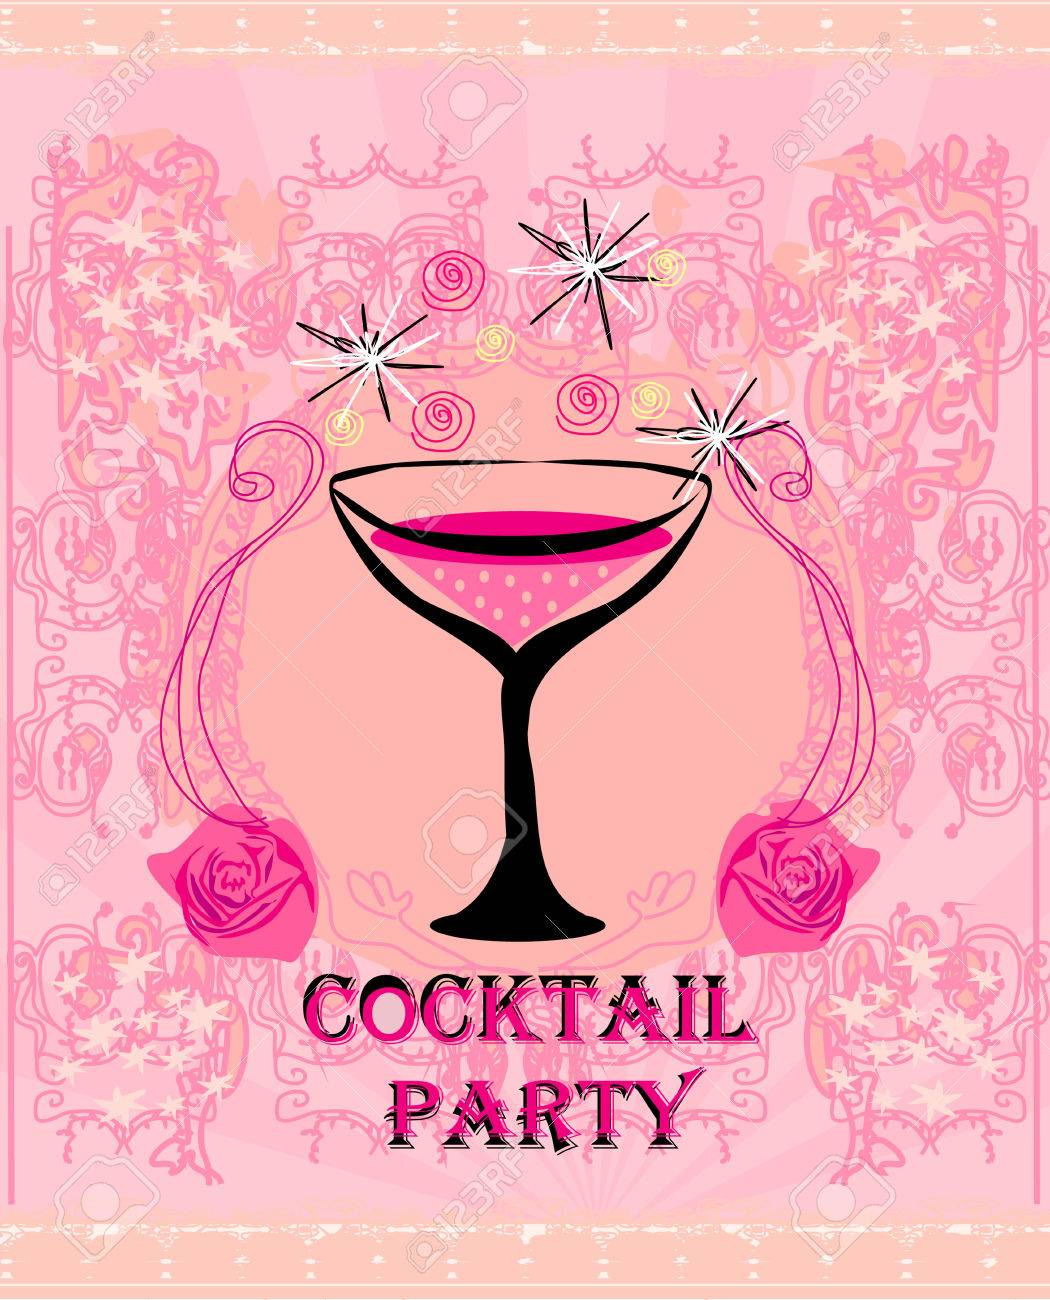 Cocktail Party Invitation Card Royalty Free Cliparts Vectors And – Cocktail Party Invitation Cards